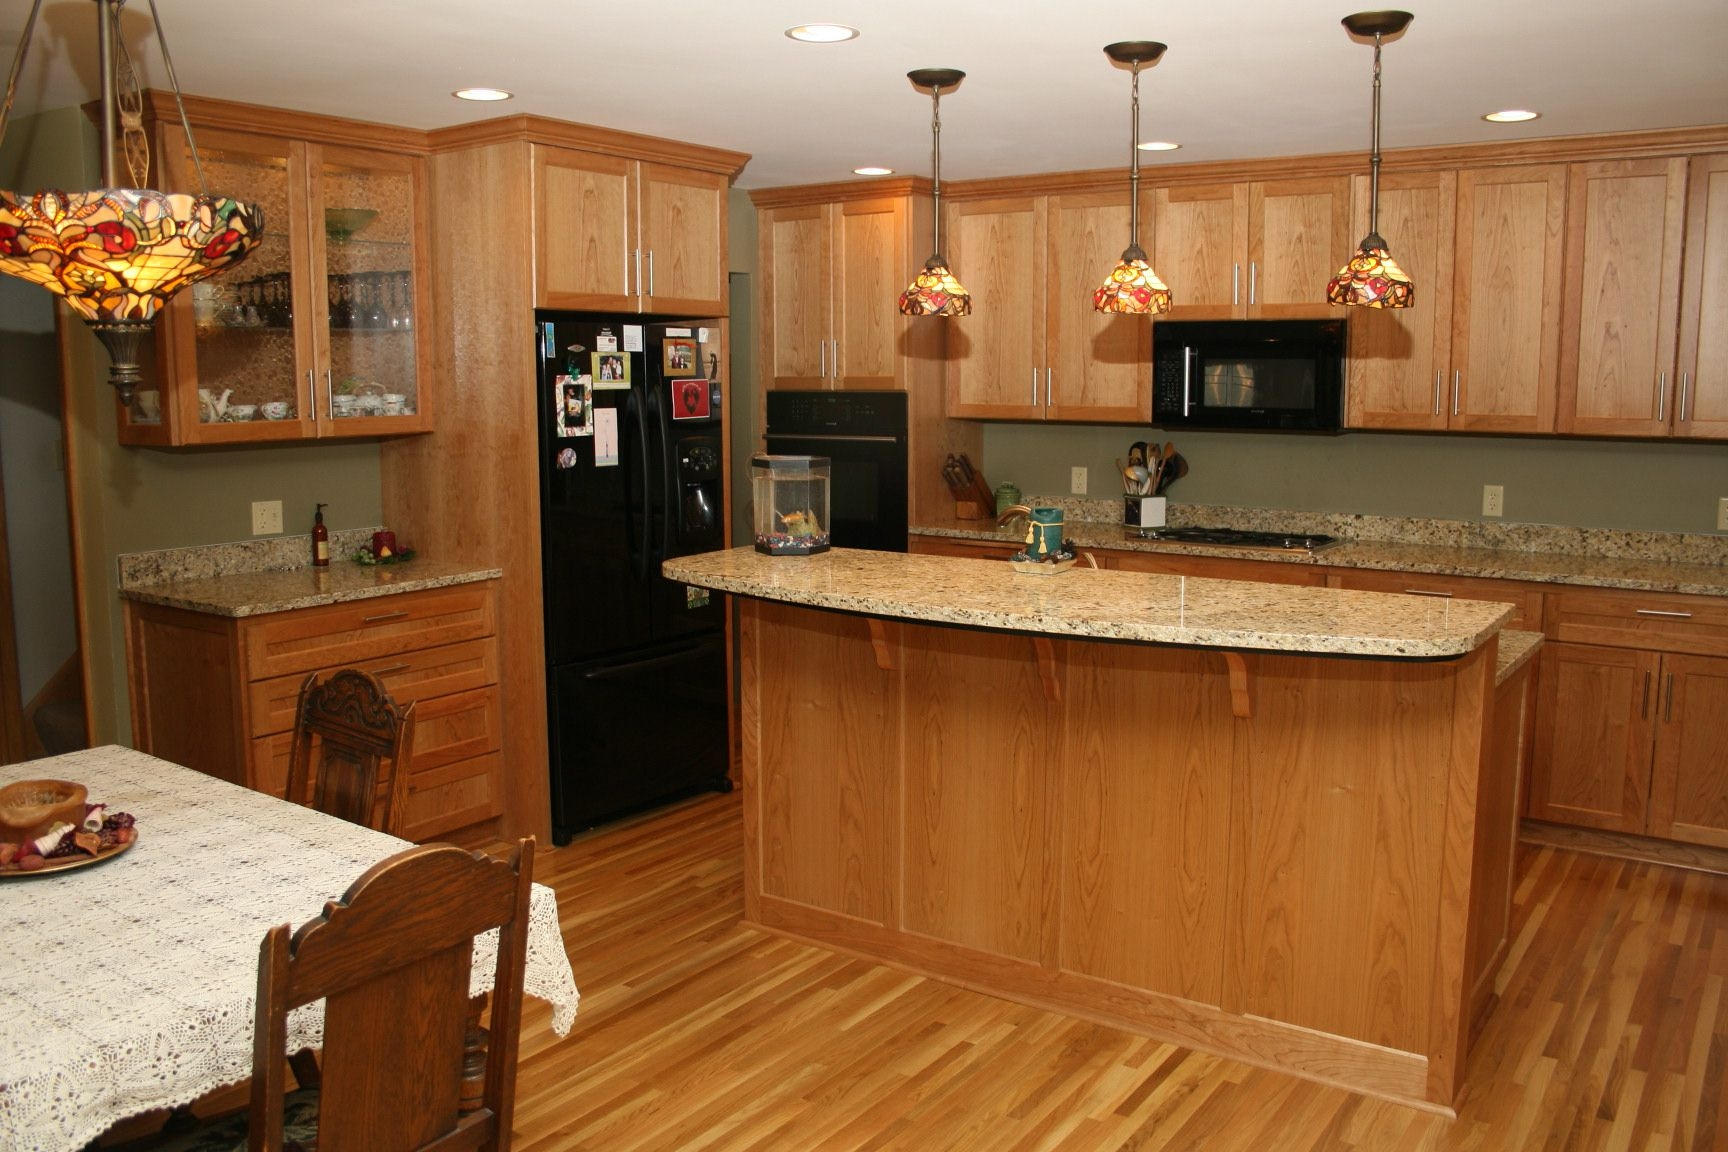 Kitchen Tile Floor Ideas With Light Wood Cabinets